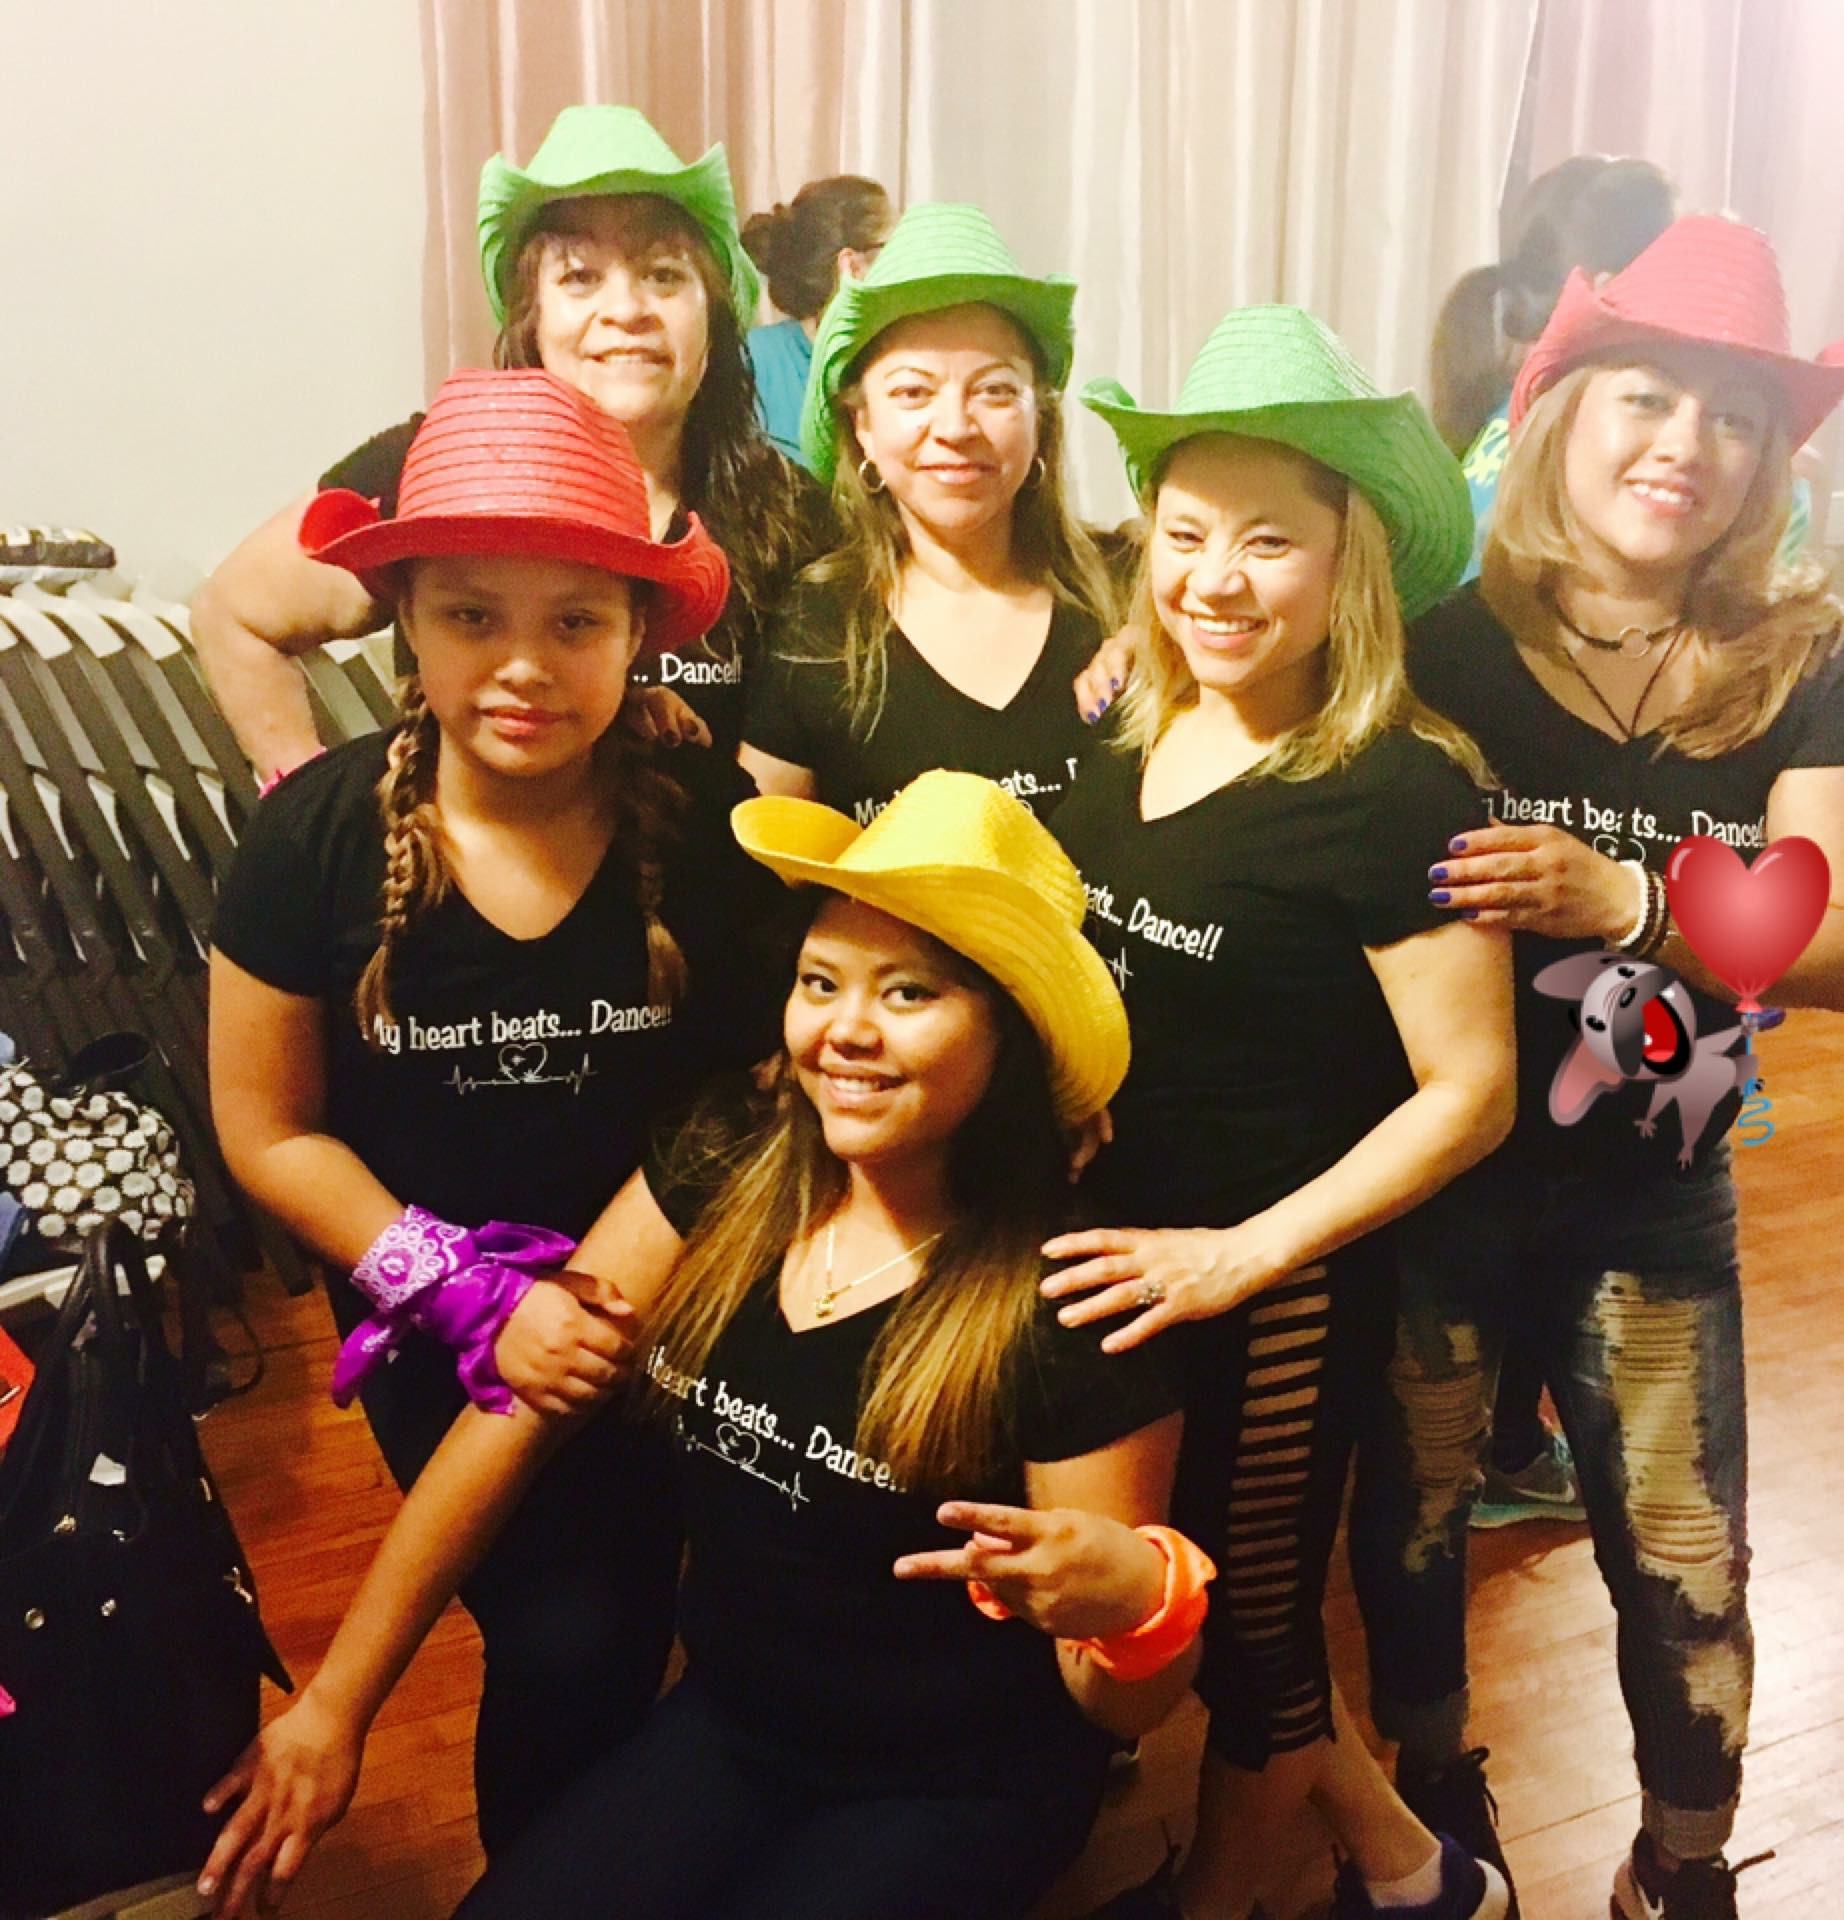 Design your own t-shirt and hats - My Beautiful Group T Shirt Photo